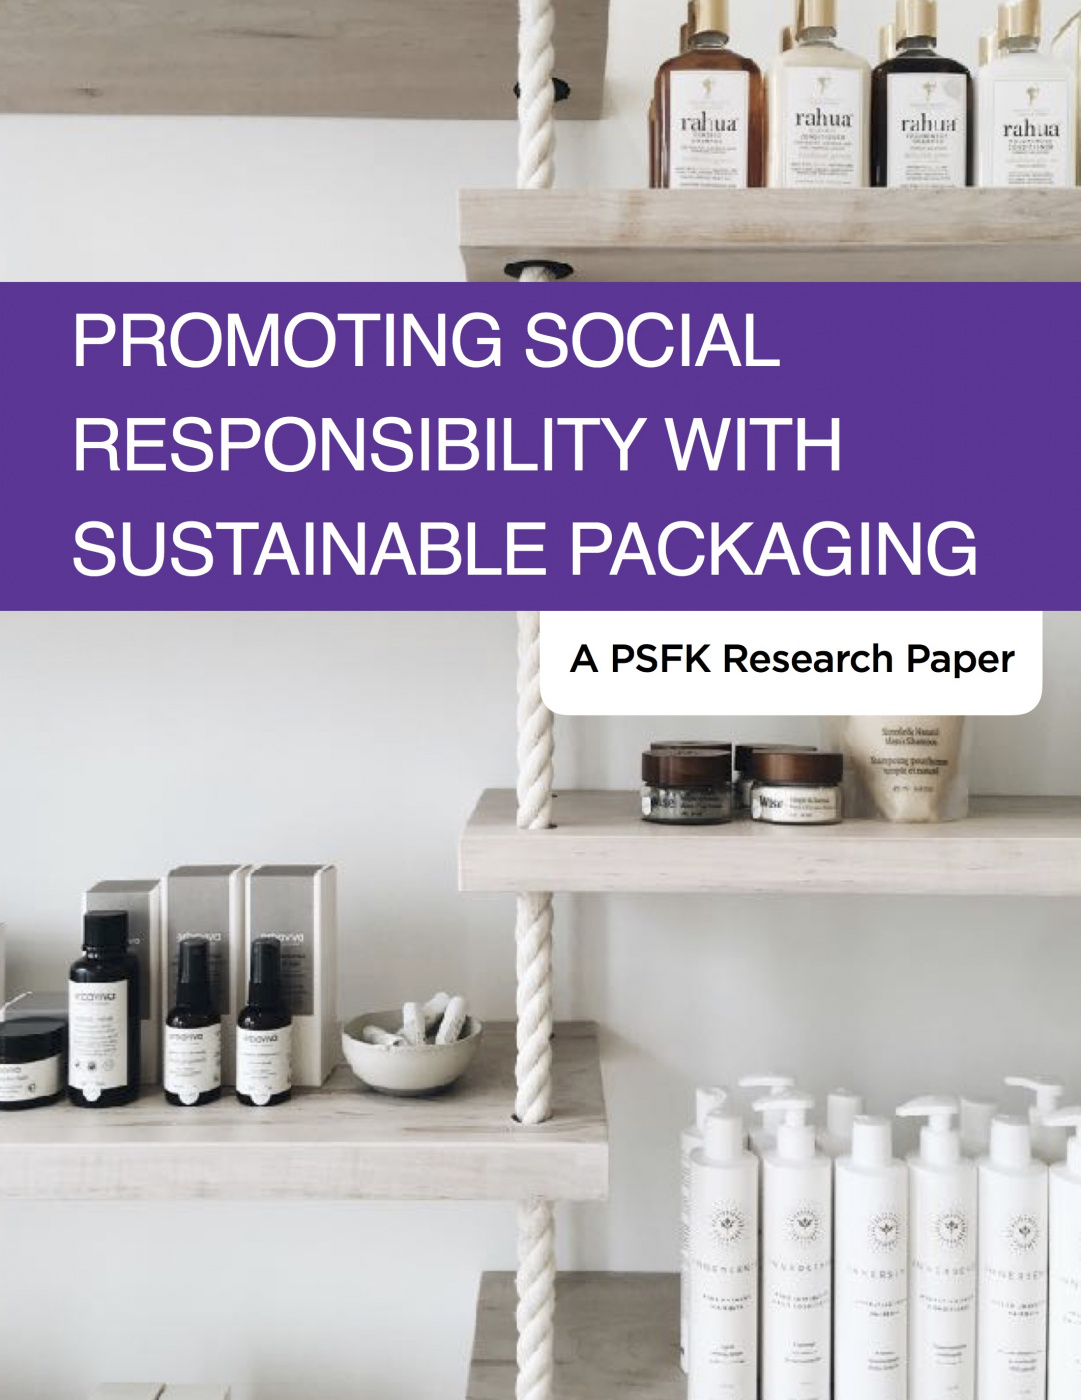 Promoting Social Responsibility With Sustainable Packaging